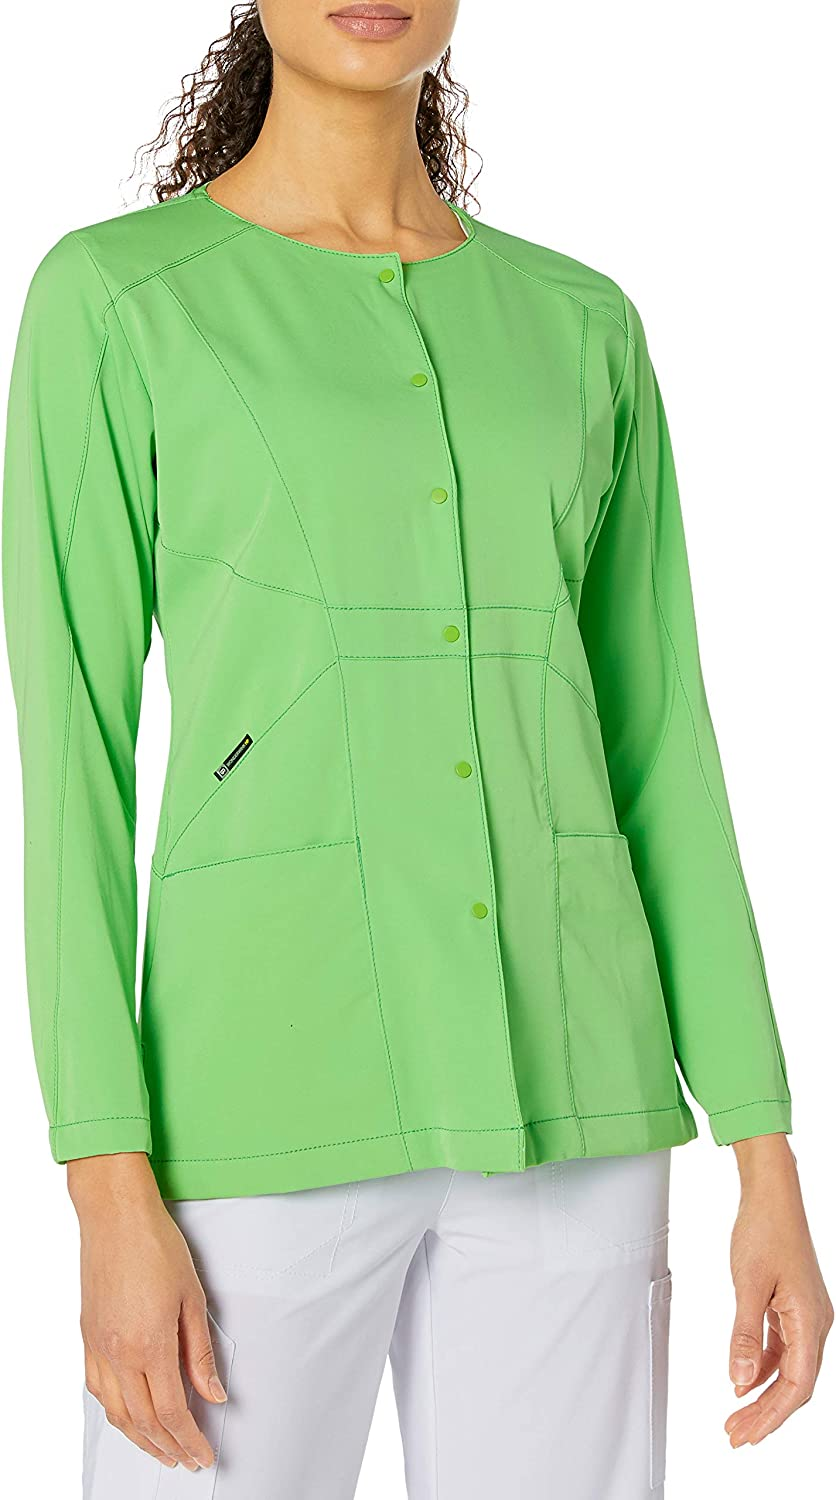 WonderWink Hp Prism Snap Front Women's Scrub Jacket